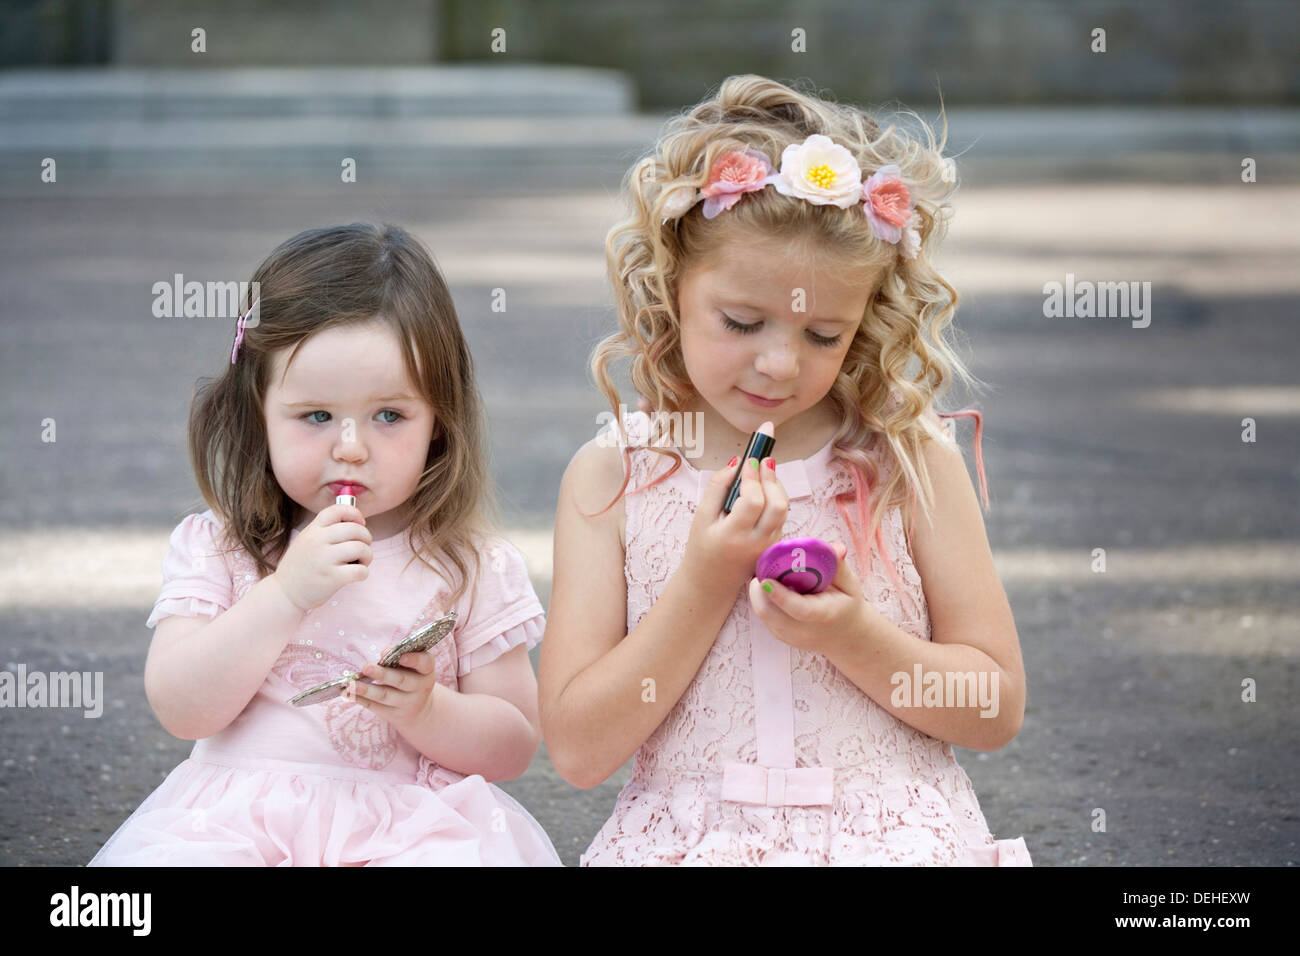 Two preteen girls wearing pink dresses and putting lipstick on. - Stock Image